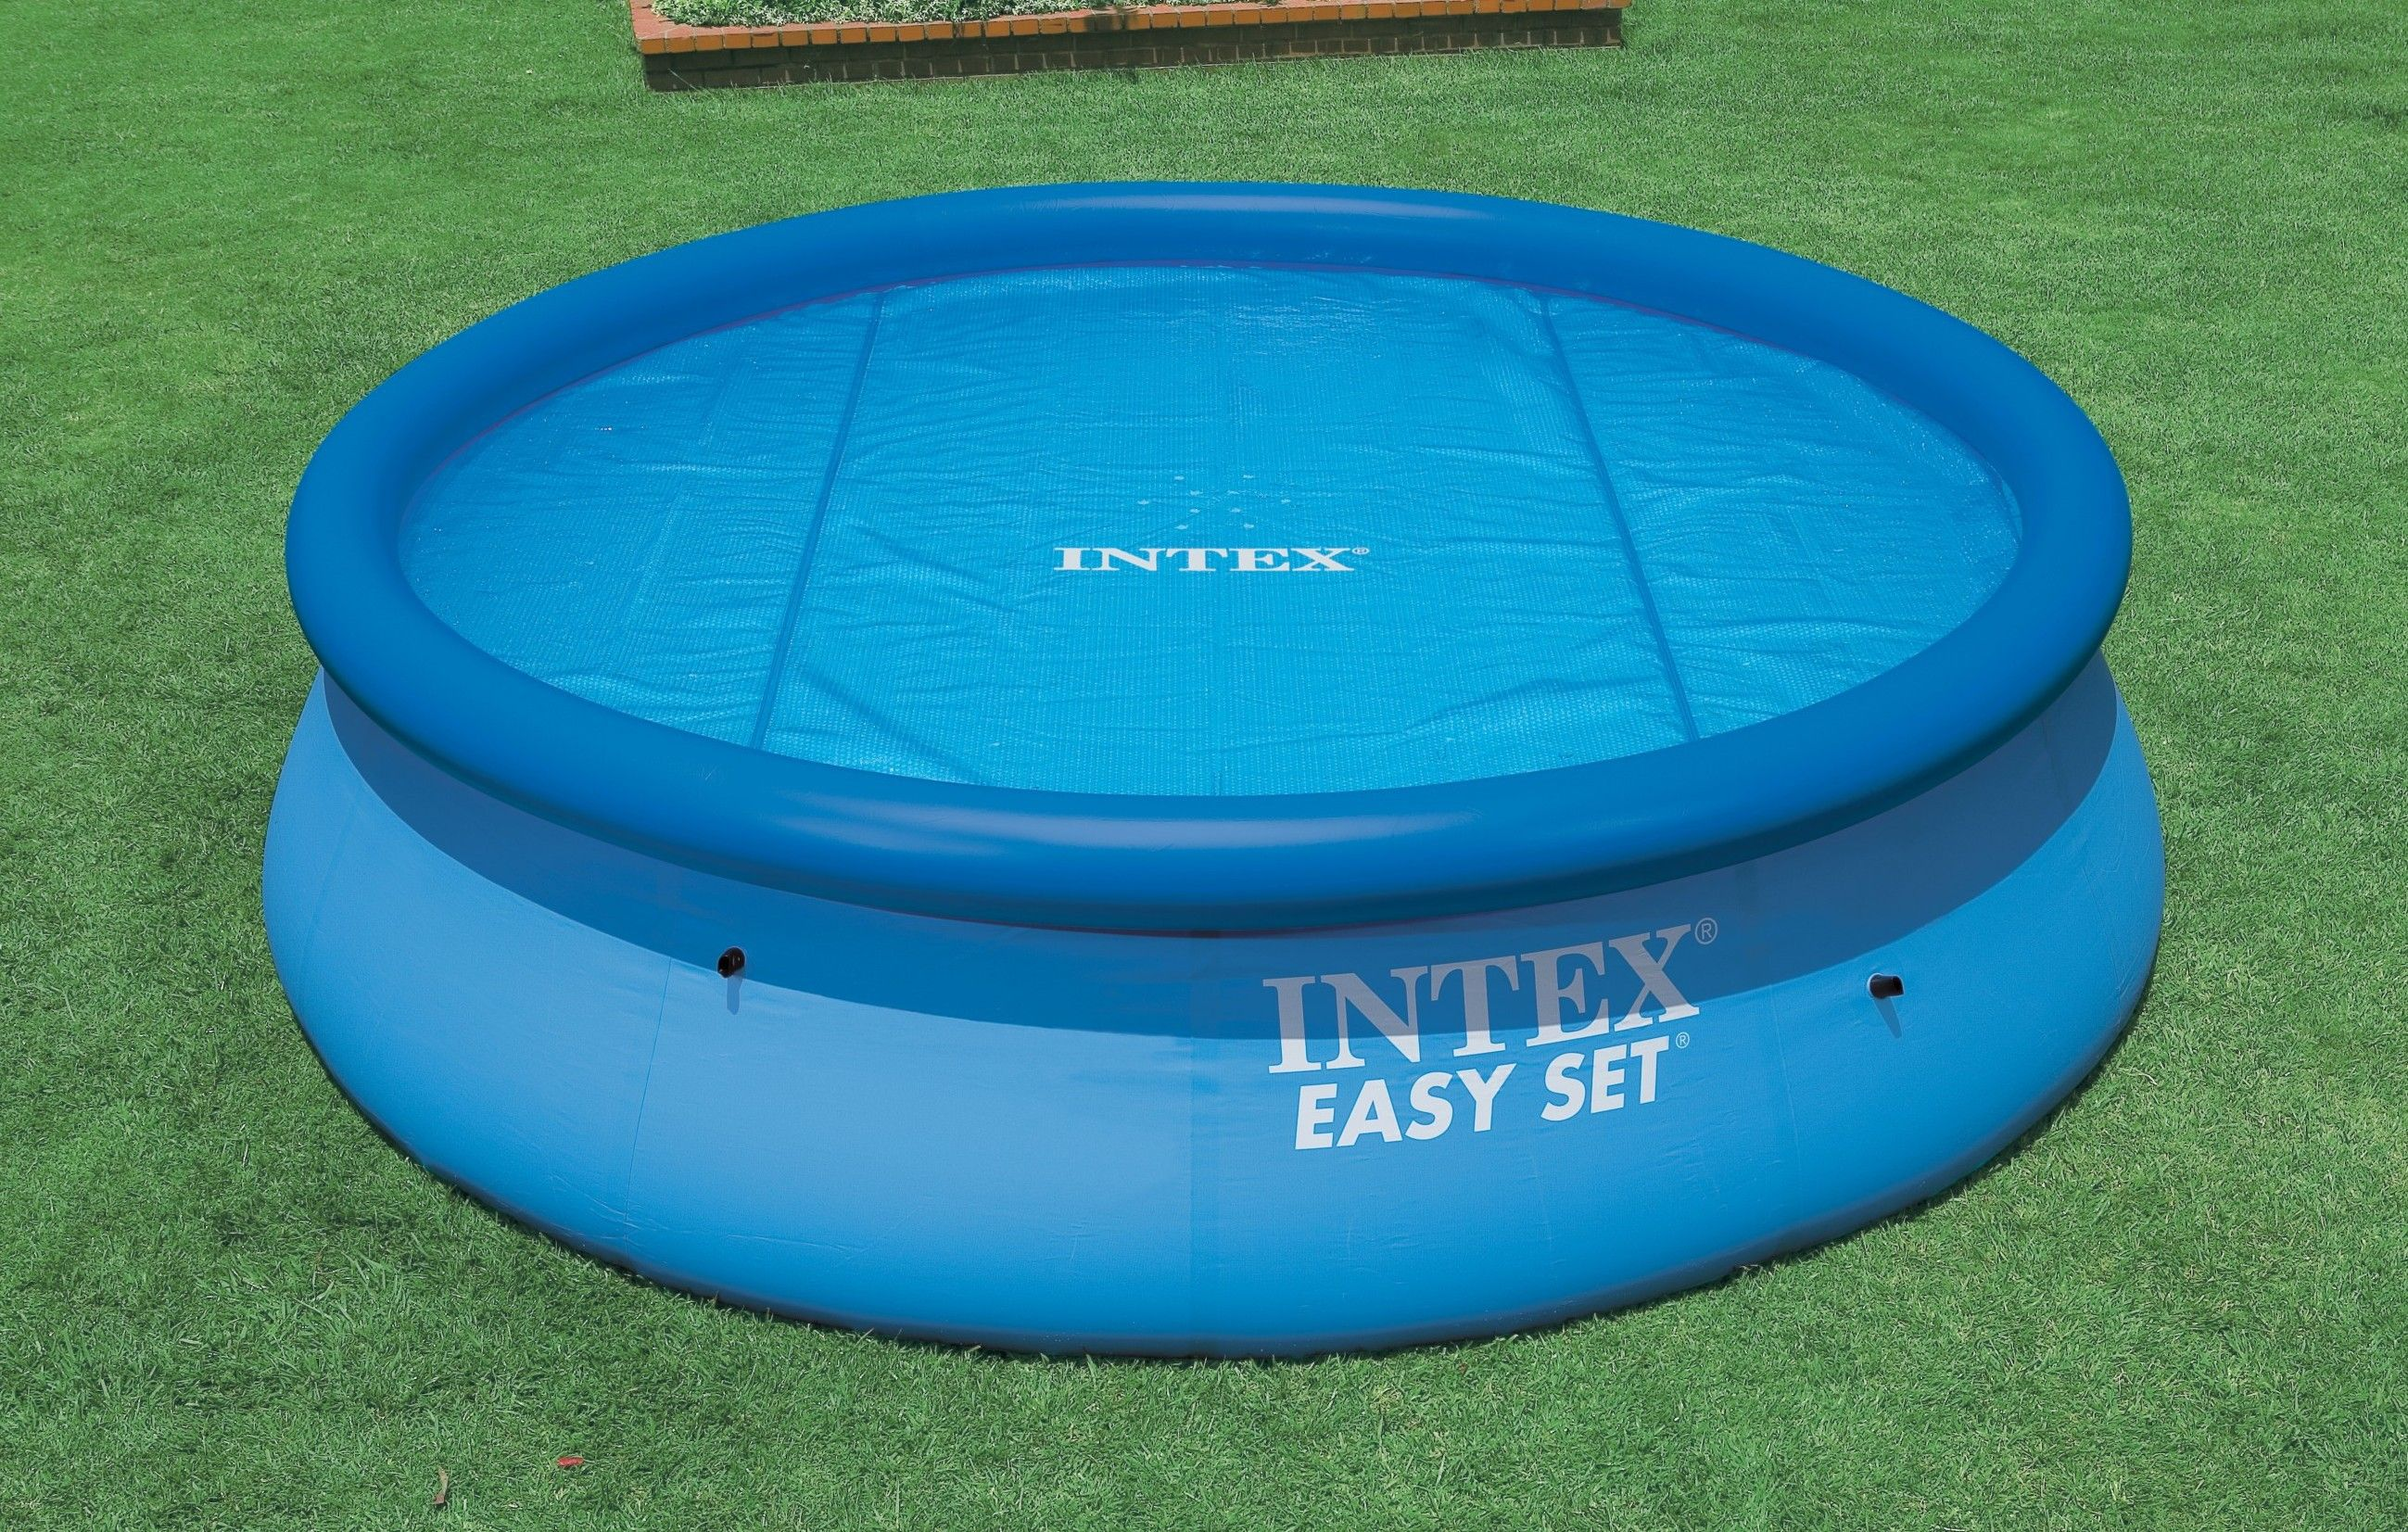 Pool Filteranlage Set Intex Pool Poolfolie Ersatzfolie Für Easy Frame Pools 457 Cm